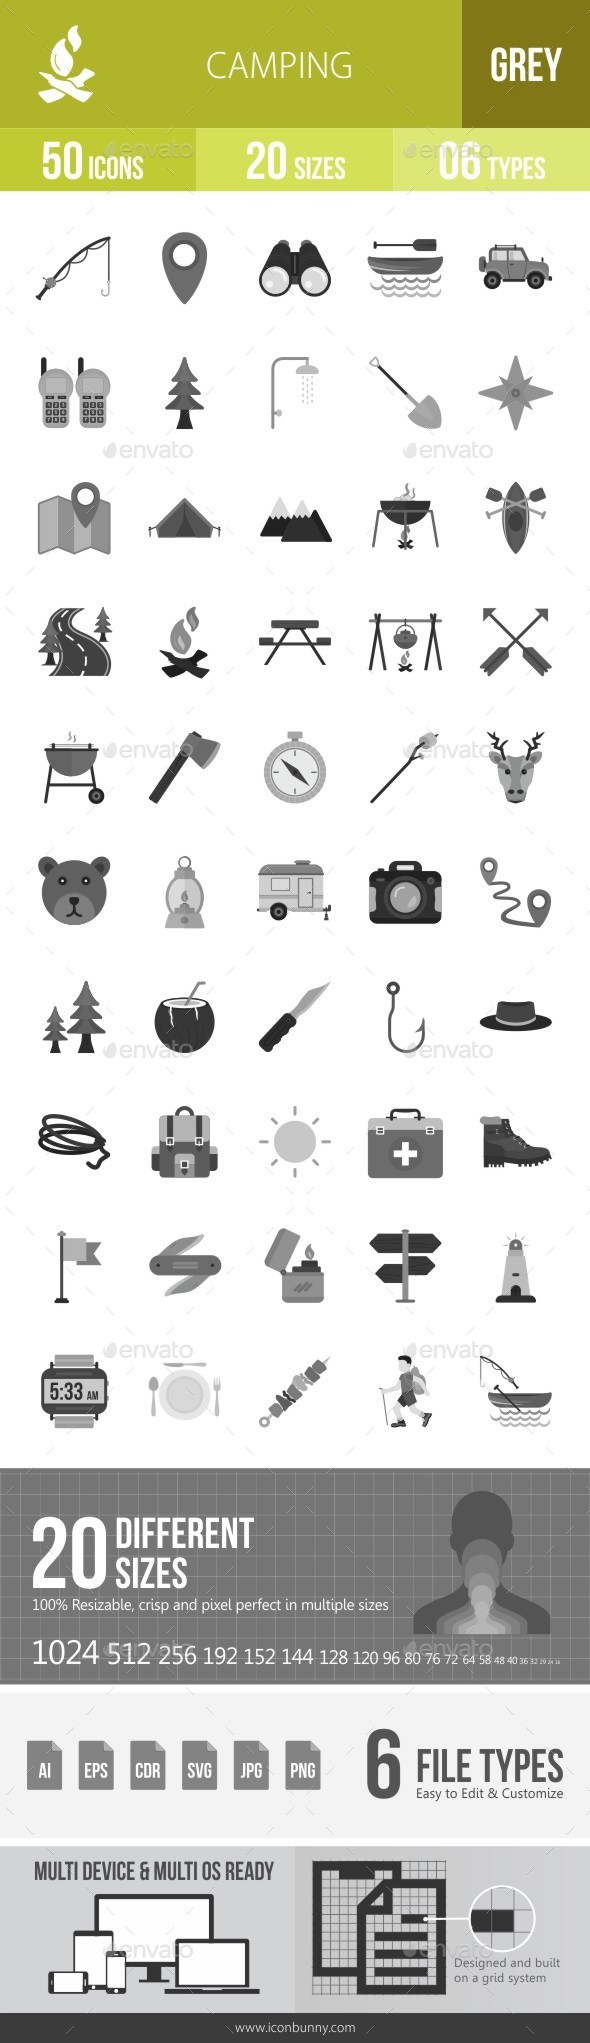 Camping Greyscale Icons - Icons